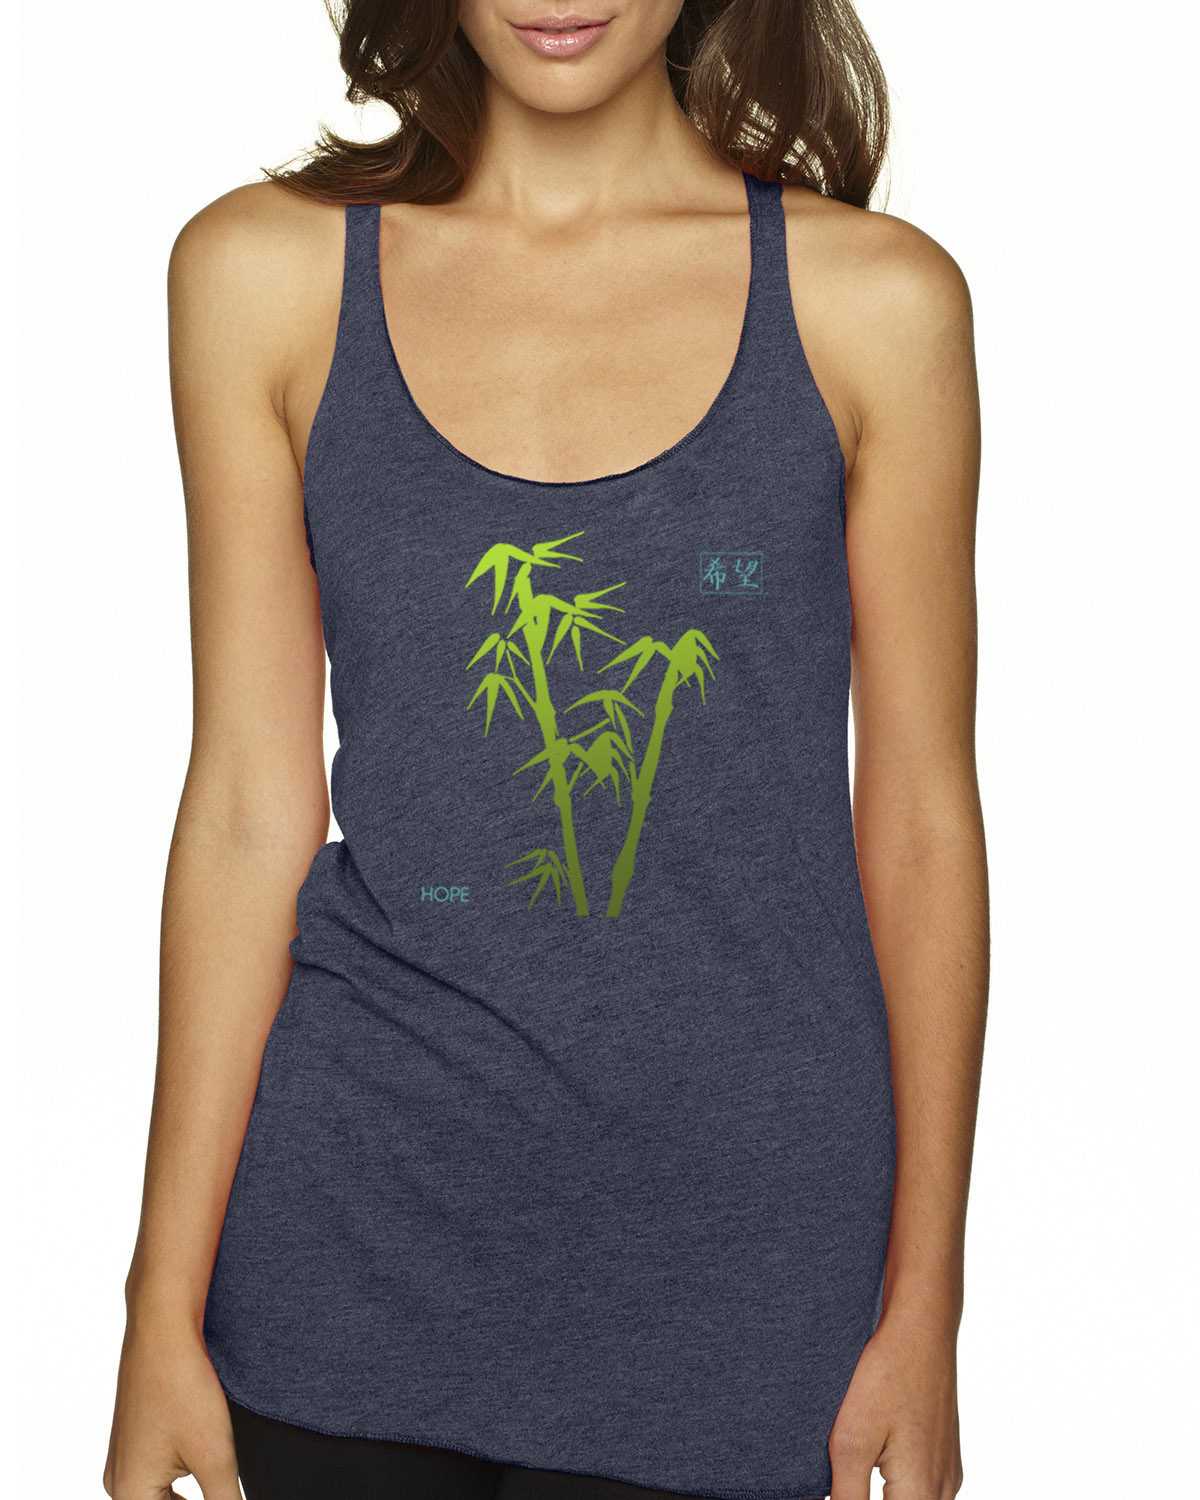 Racer-back tri-blend tank top (Indigo)